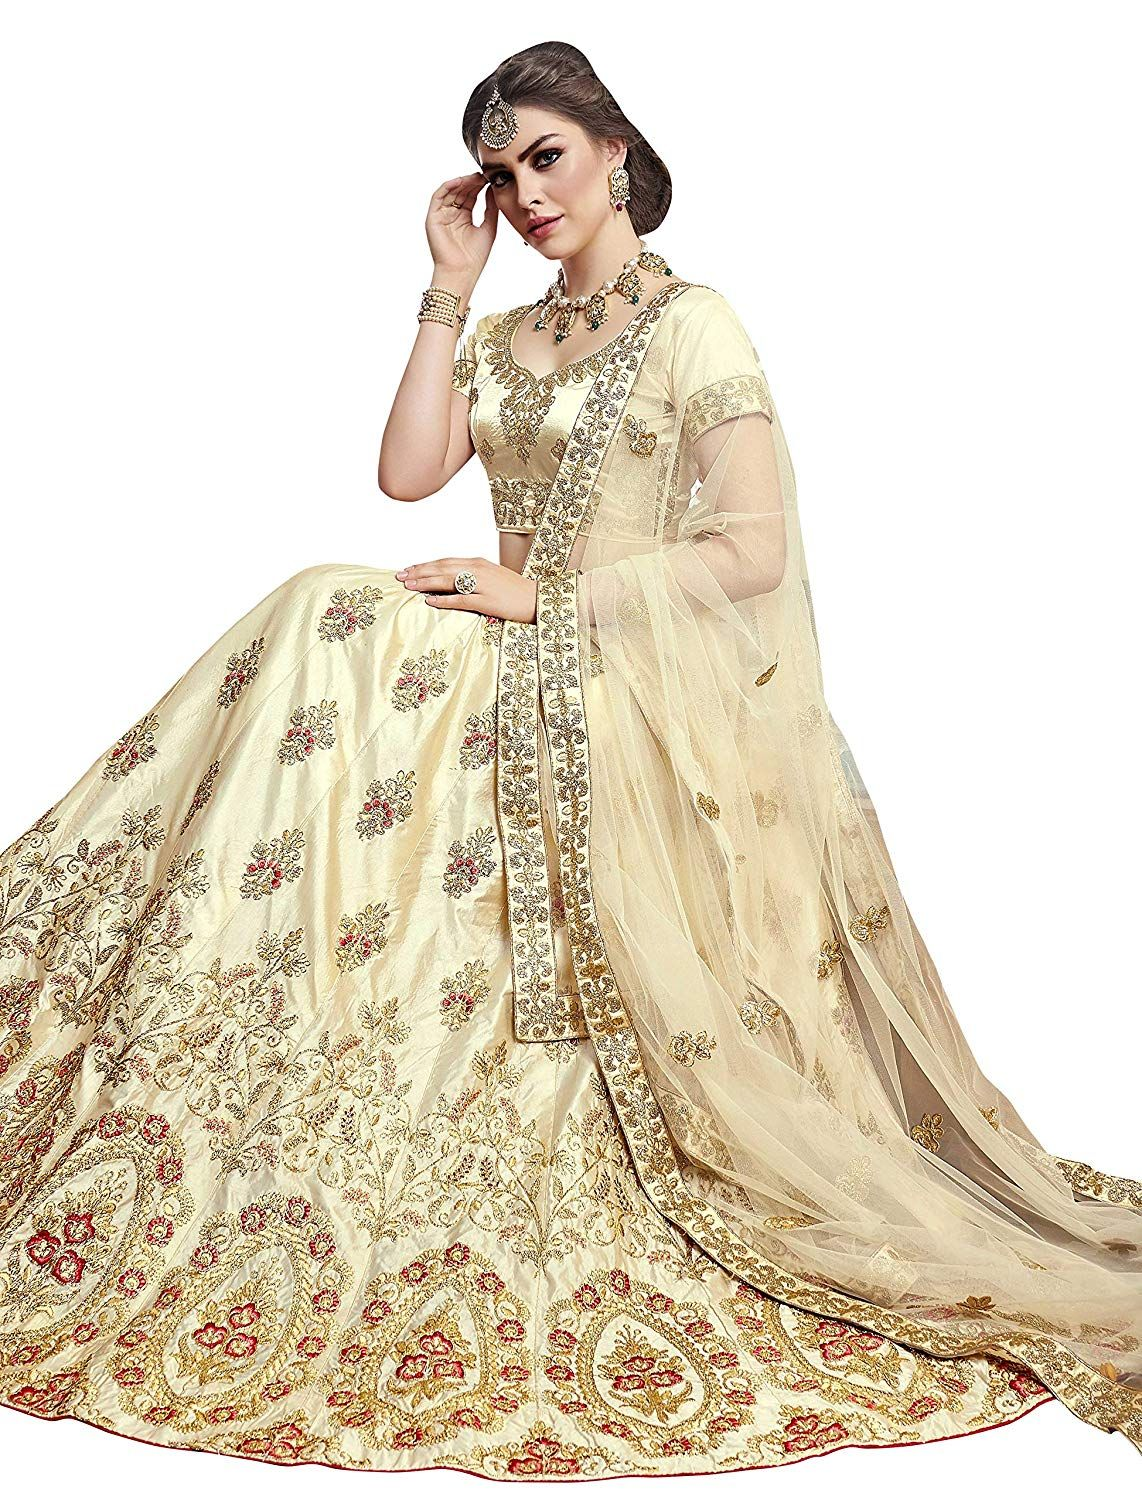 a3c279f978 Manvaa Women S Silk Embroidered Lehenga Choli In Beige Color  Amazon.in   Clothing   Accessories